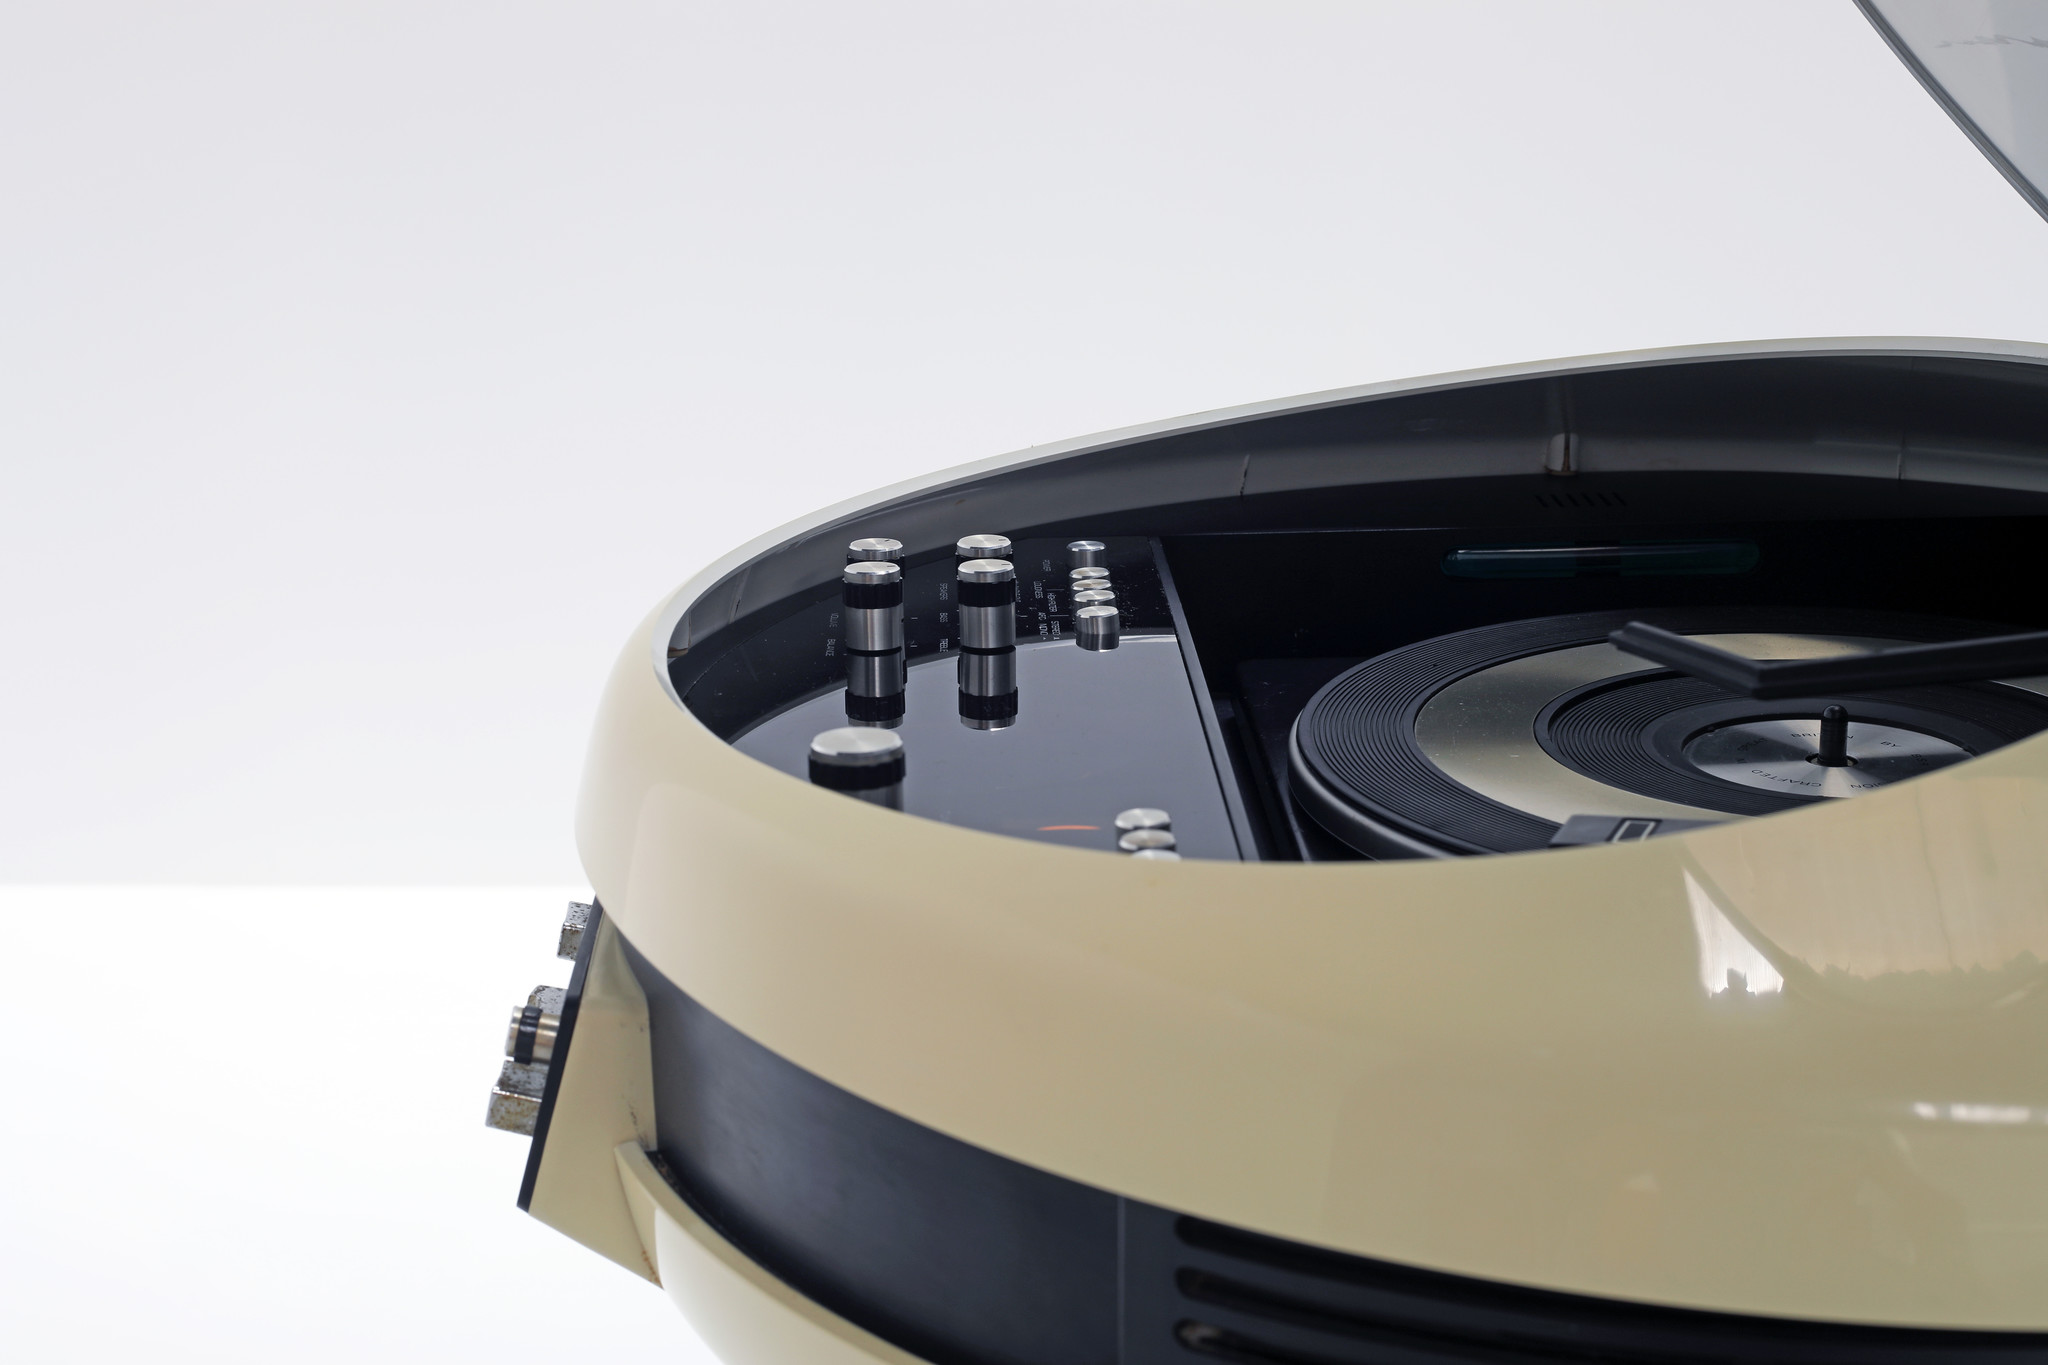 Rare Weltron Type 2007 space-age stereo, 1970s